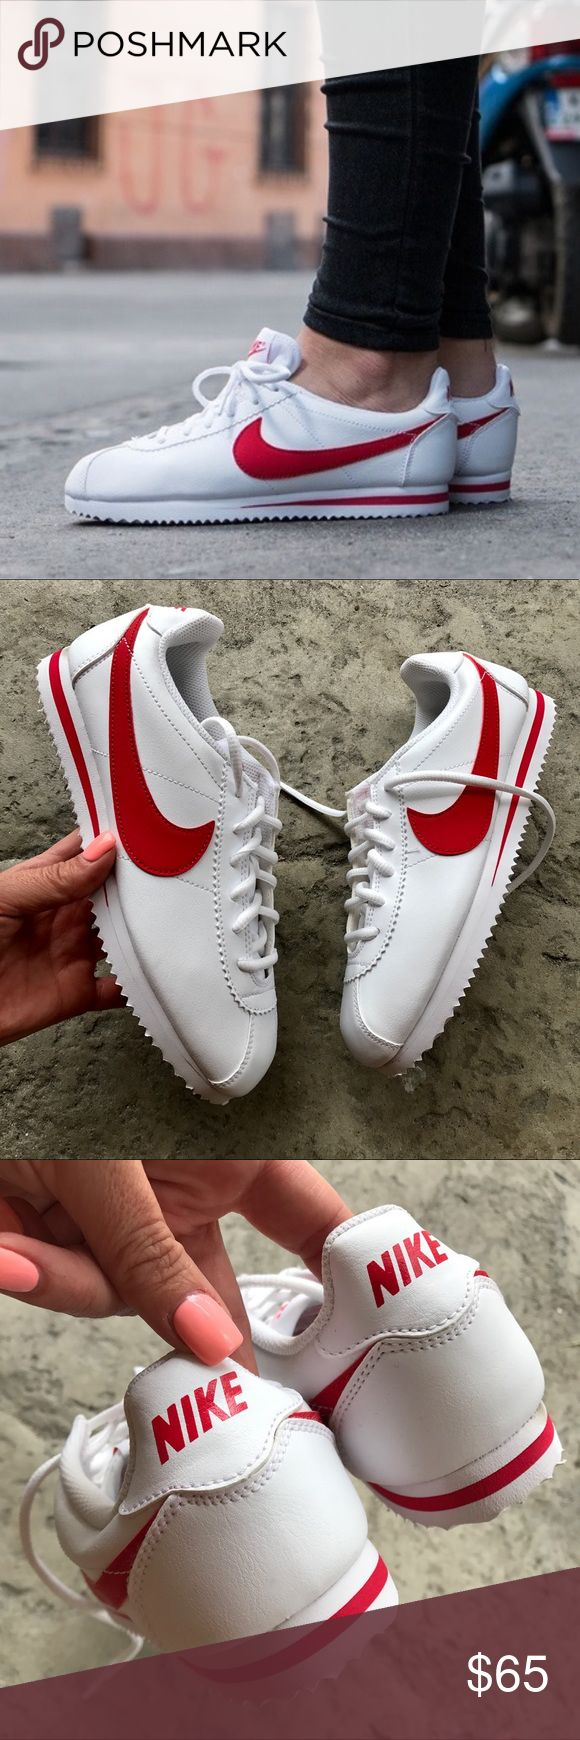 NEW 👟 NIKE CORTEZ WHITE | RED LEATHER YOUTH SIZES New never worn 😍 NIKE CLASSIC CORTEZ | TRIPLE WHITE ALL LEATHER. UNISEX SIZING 👫  NO ORIGINAL BOX, smoke free home.  PRICED FIRM. 100% authentic & direct from NIKE ❤️ Nike Shoes Sneakers